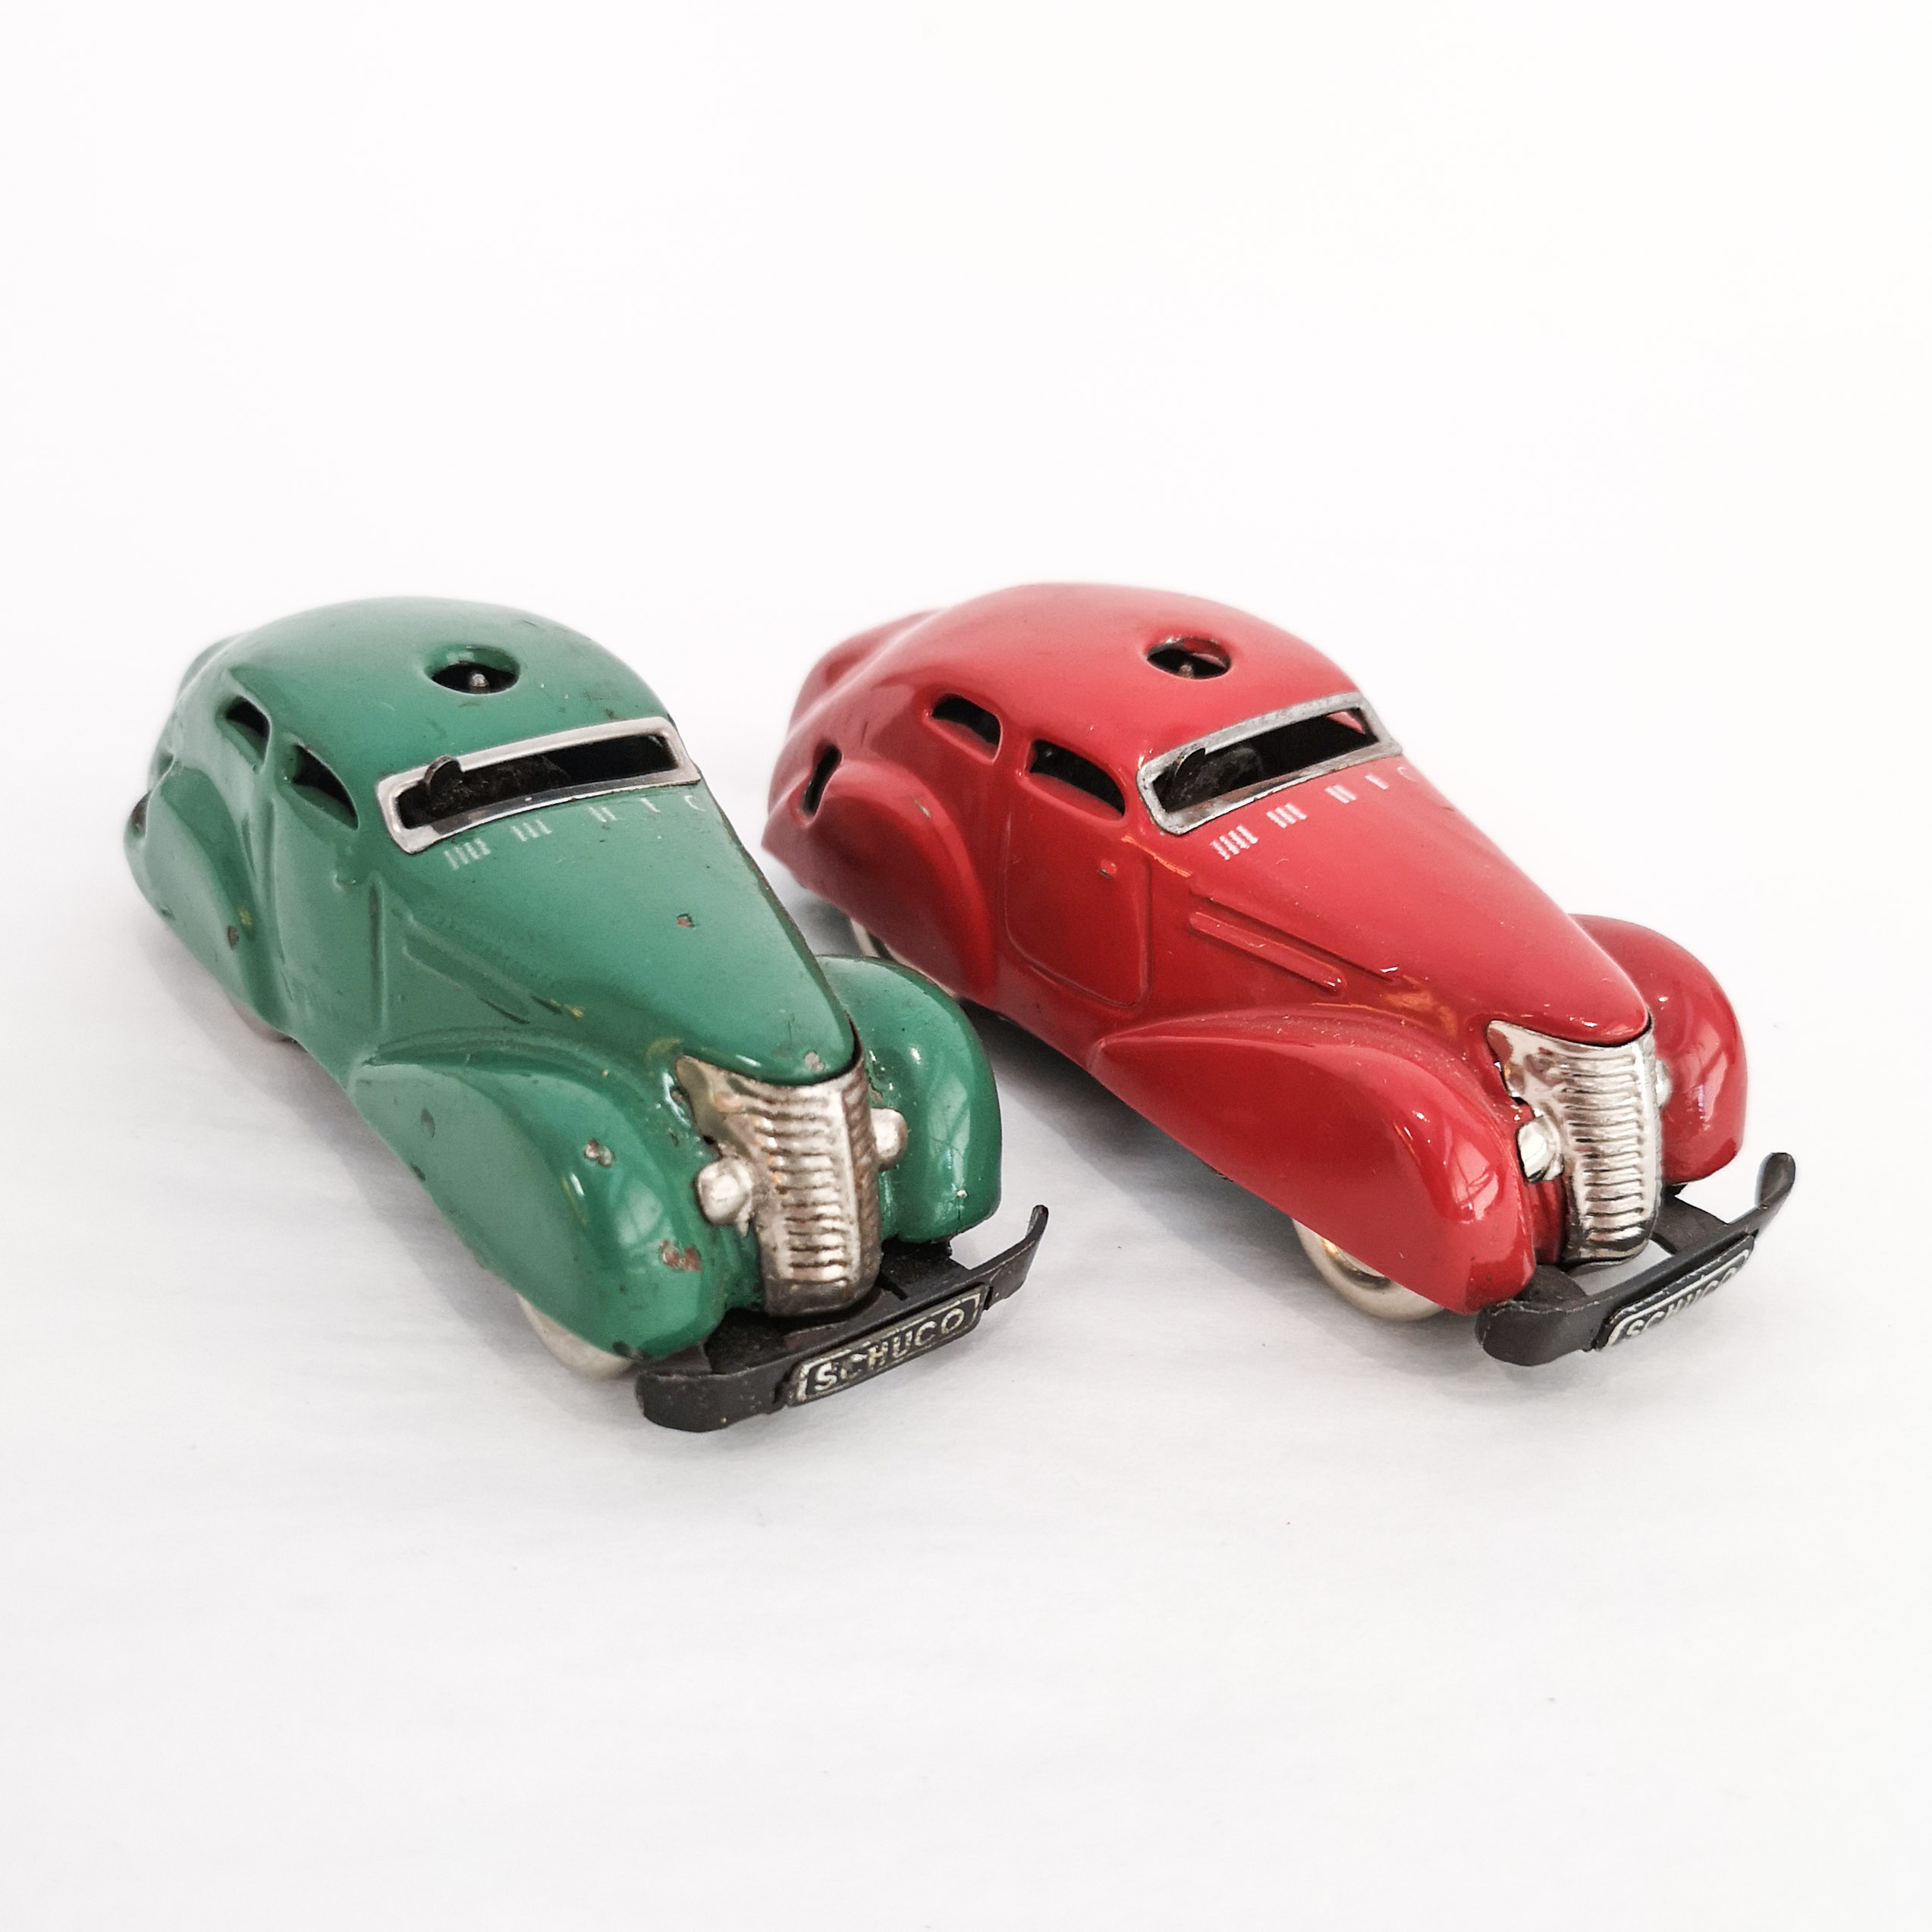 Green and red Schuco Telesteering clockwork cars, featuring 4-speed gear and stopping lever. 1.5